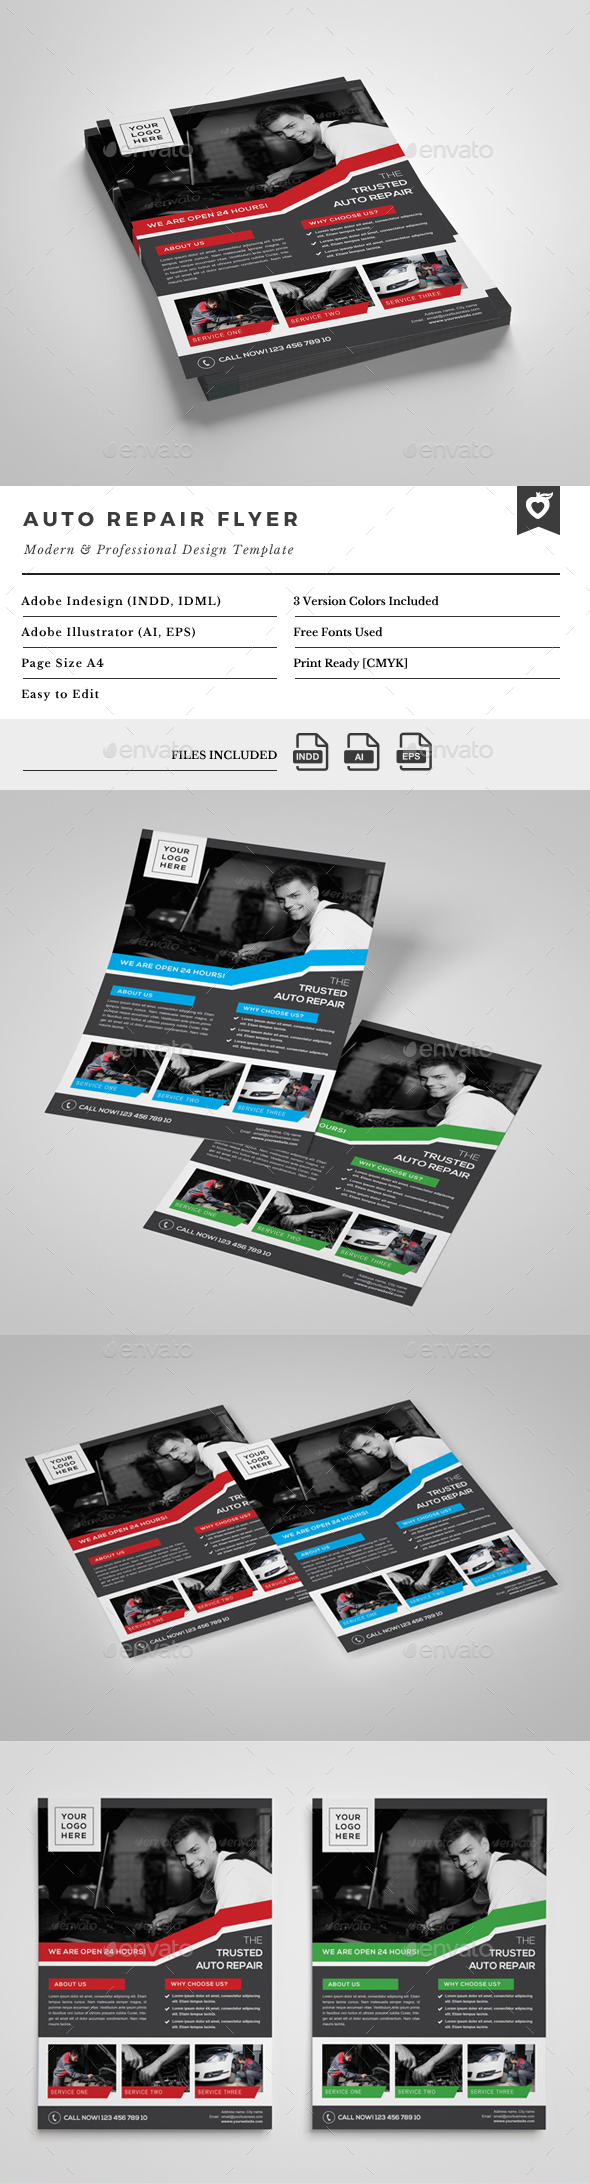 Auto Repair Flyer - Commerce Flyers